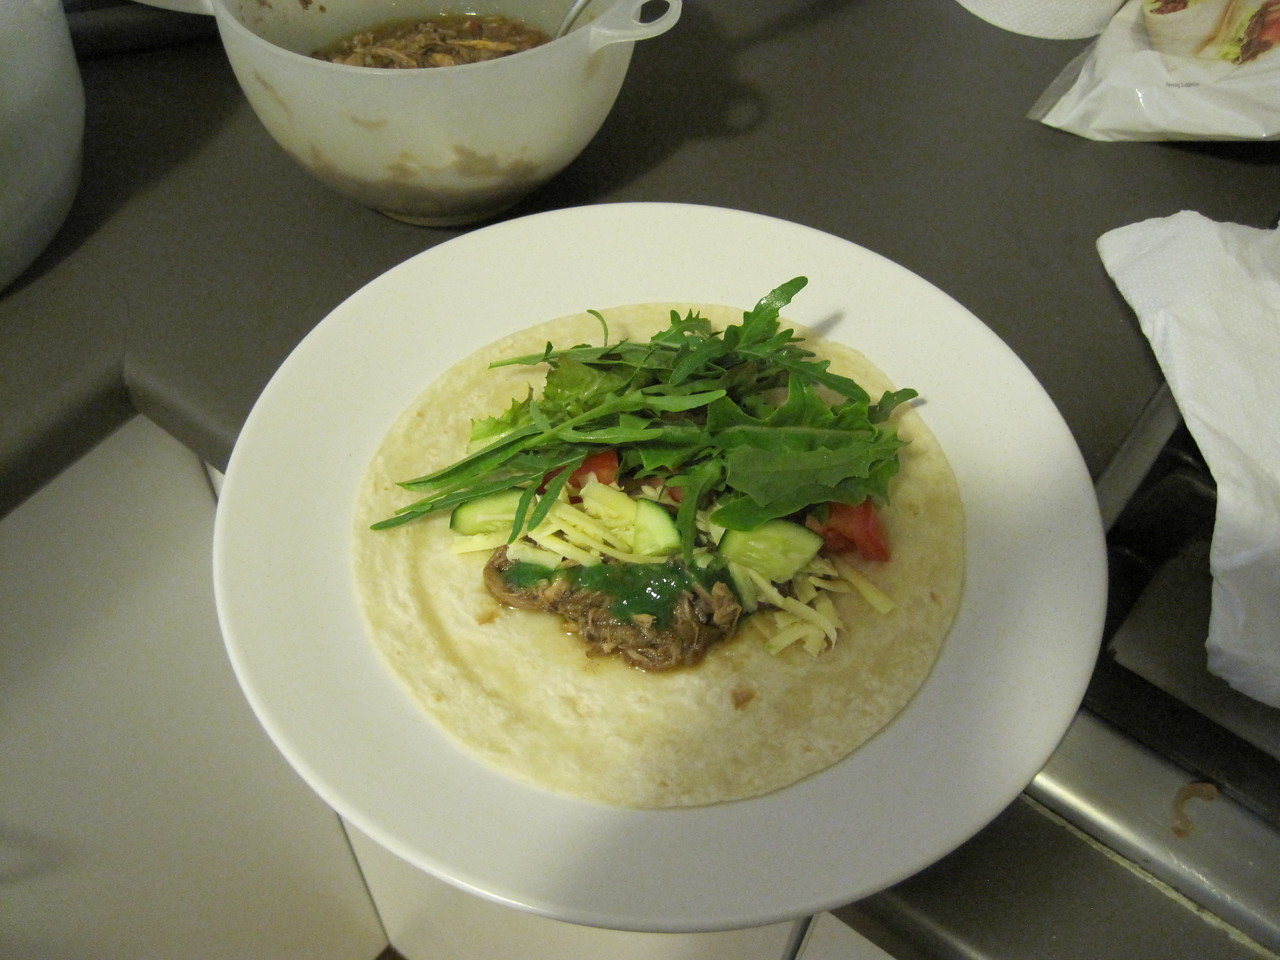 Served in a tortilla with some fresh greens from the garden. Delicious.